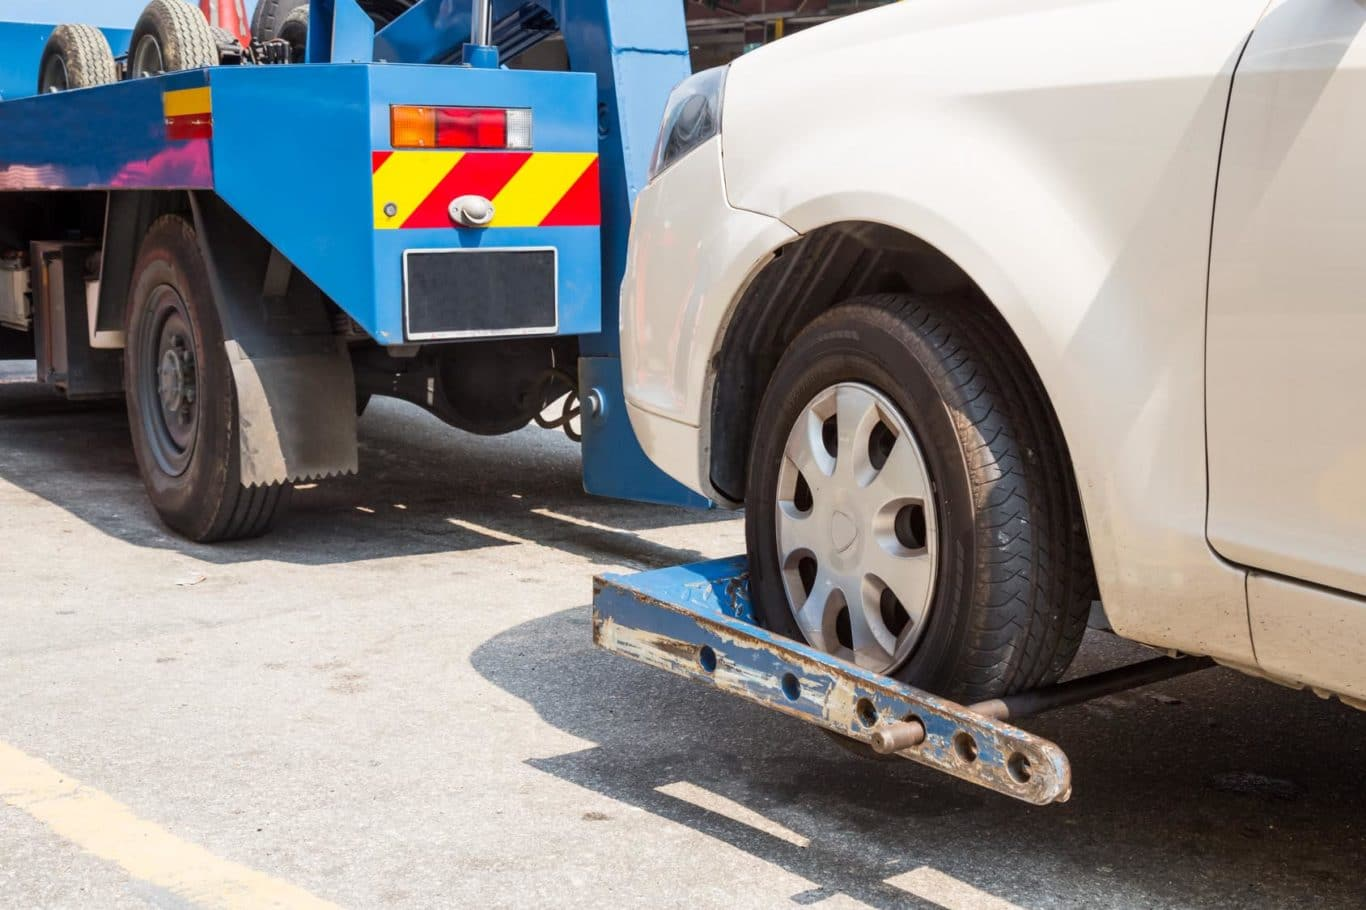 Annamoe expert Car Towing services